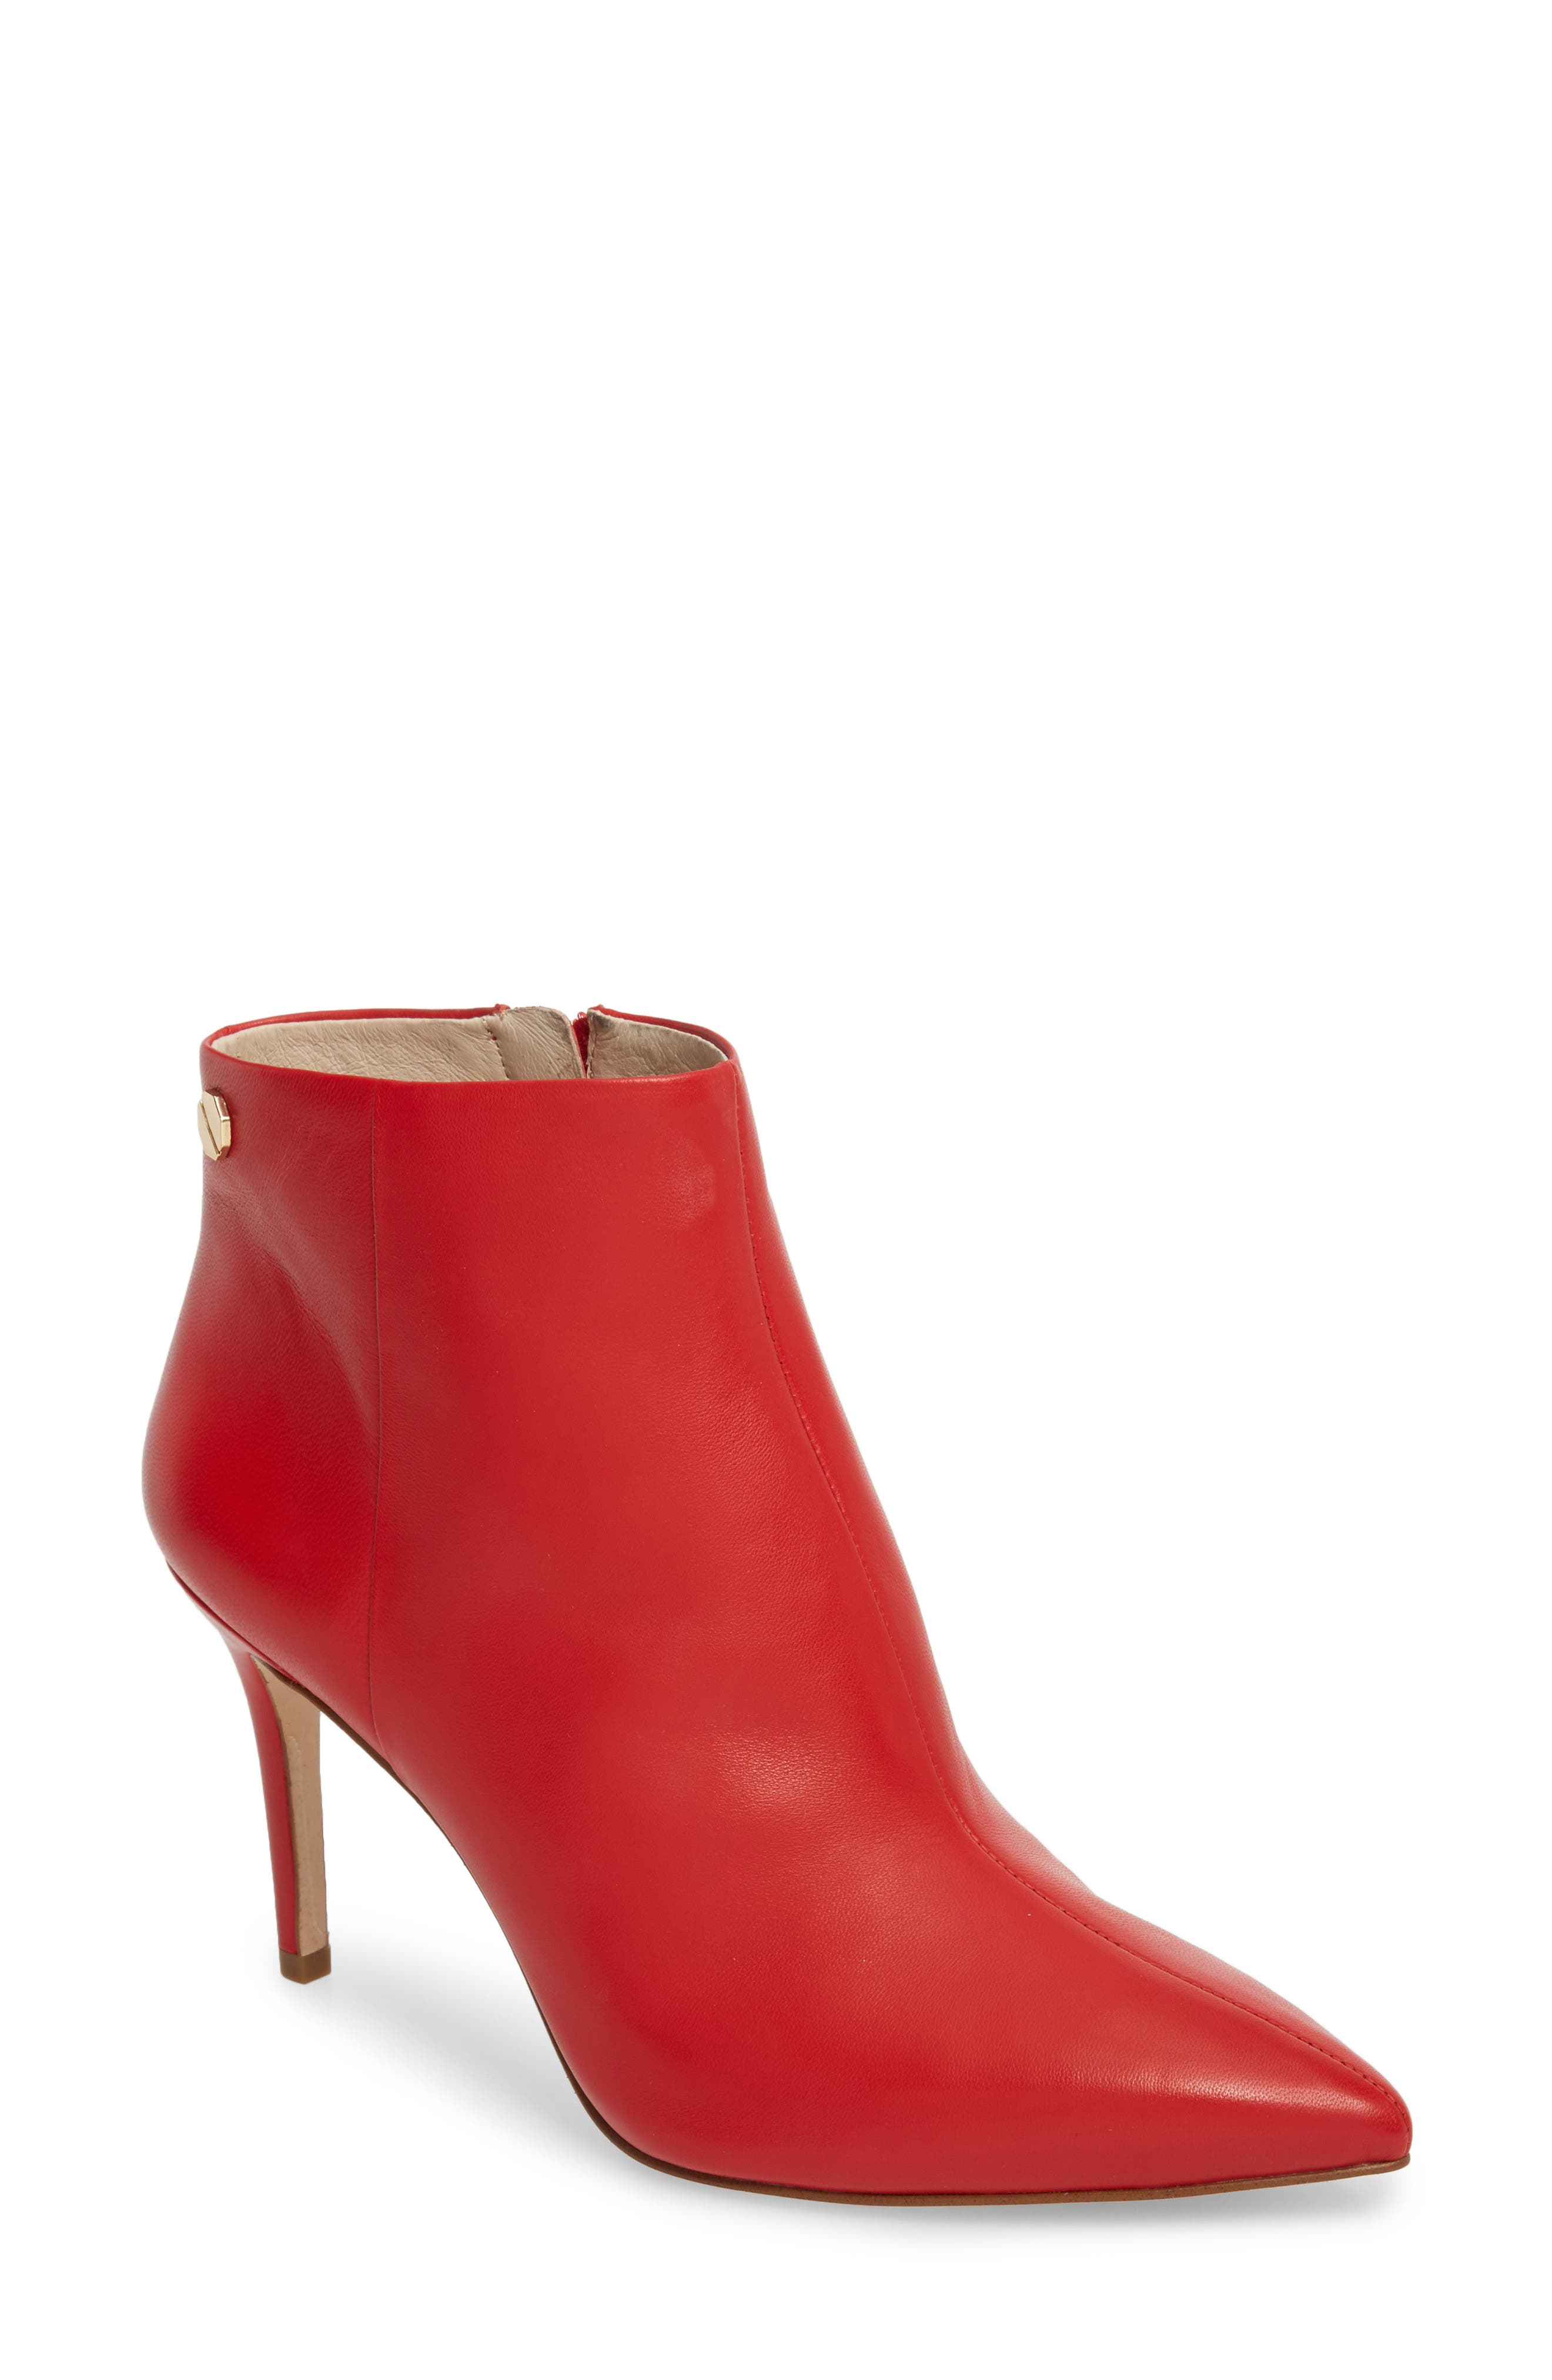 be5b3ff2c6a Louise et cie sonya pointy toe bootie women jpg 480x730 Dillards shoes  louise et cie